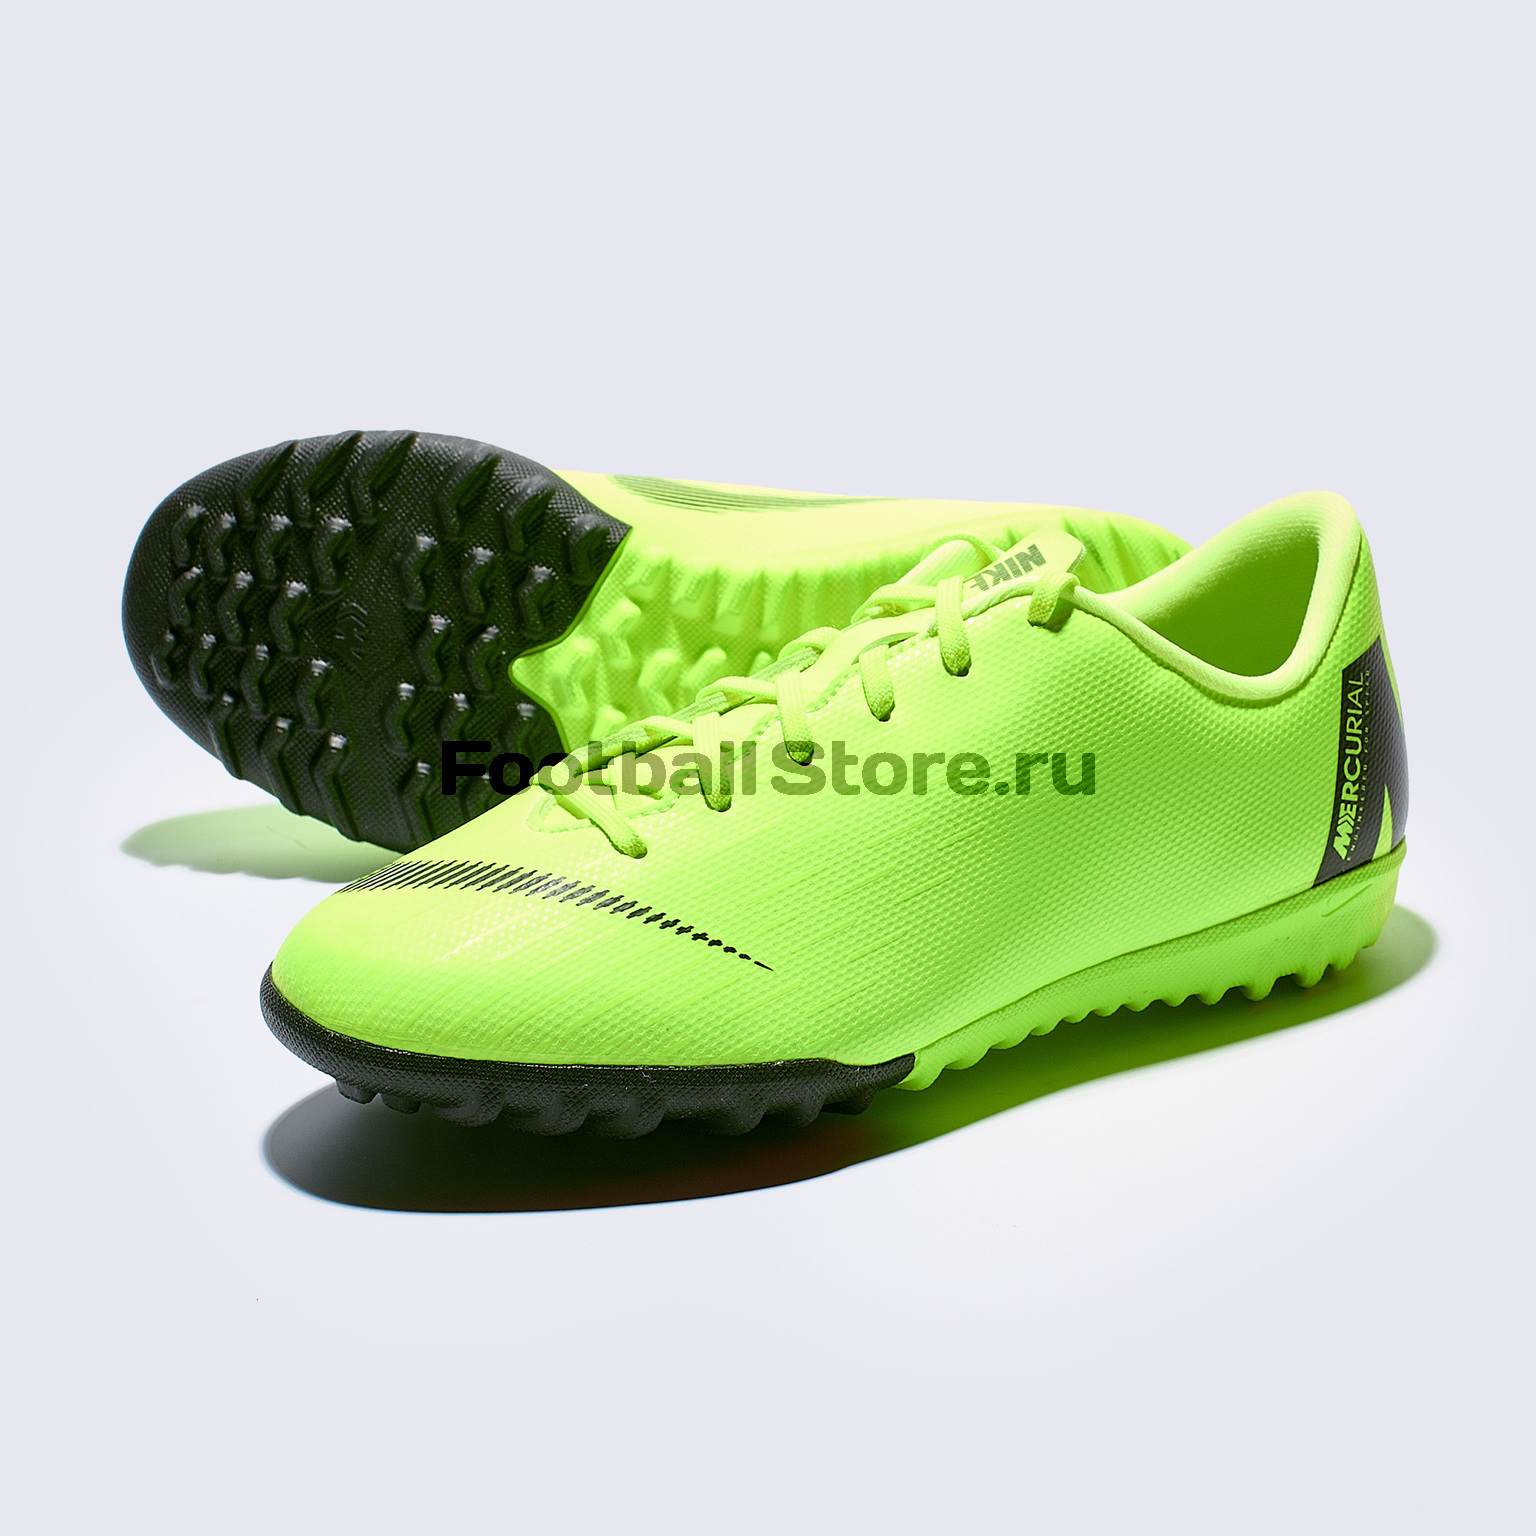 Шиповки детские Nike Vapor 12 Academy GS TF AH7342-701 francis ching d k green building illustrated